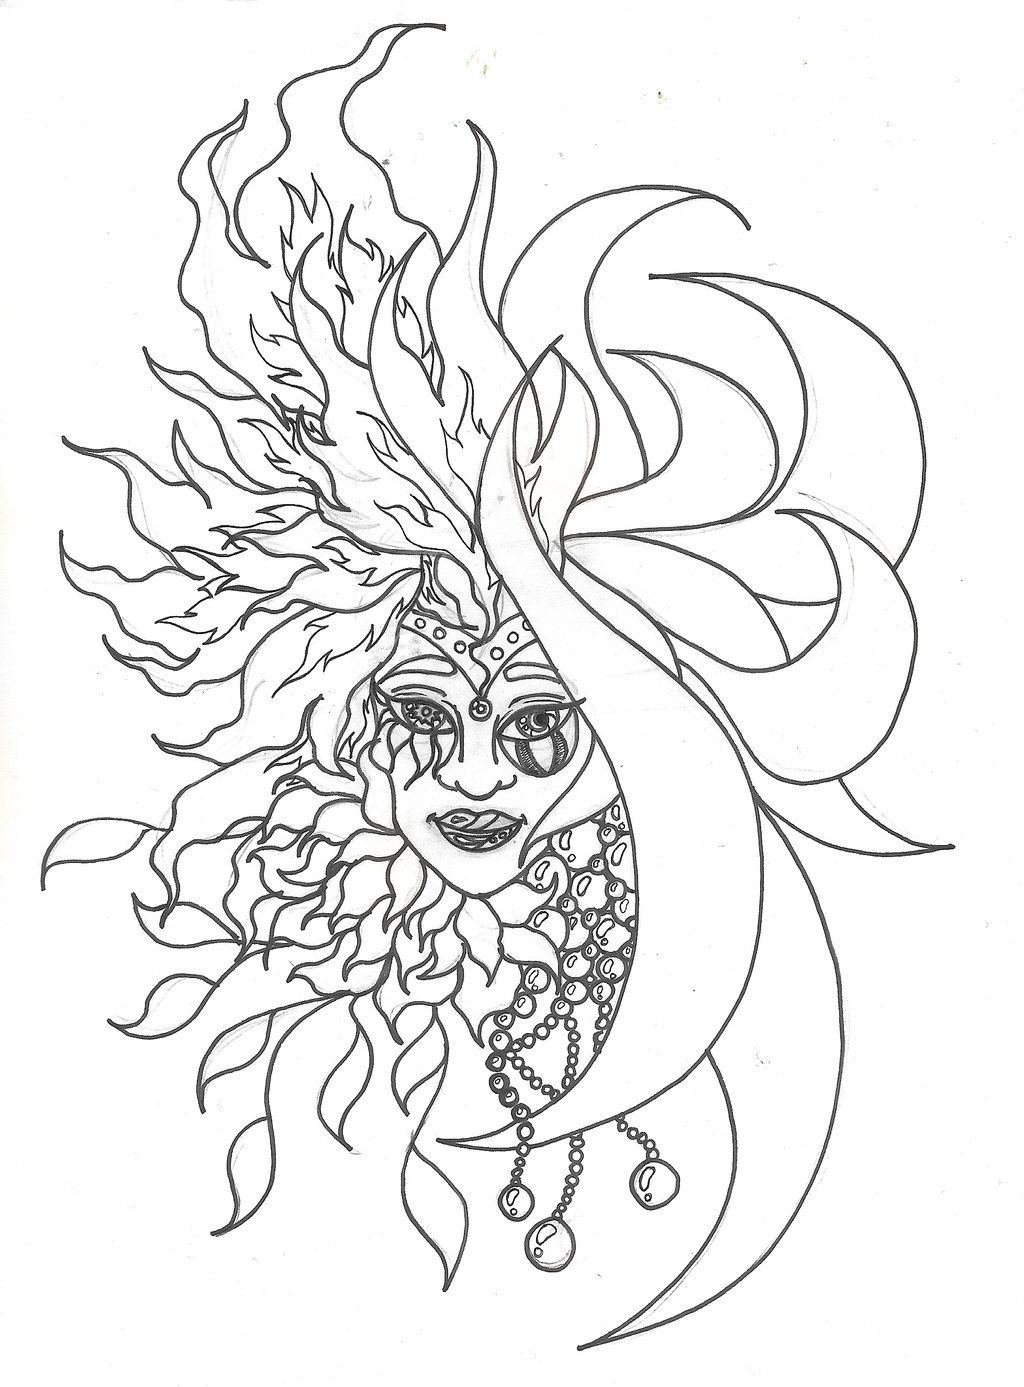 Celestial Coloring Page Adult How To Draw A Celestial Sun And Moon